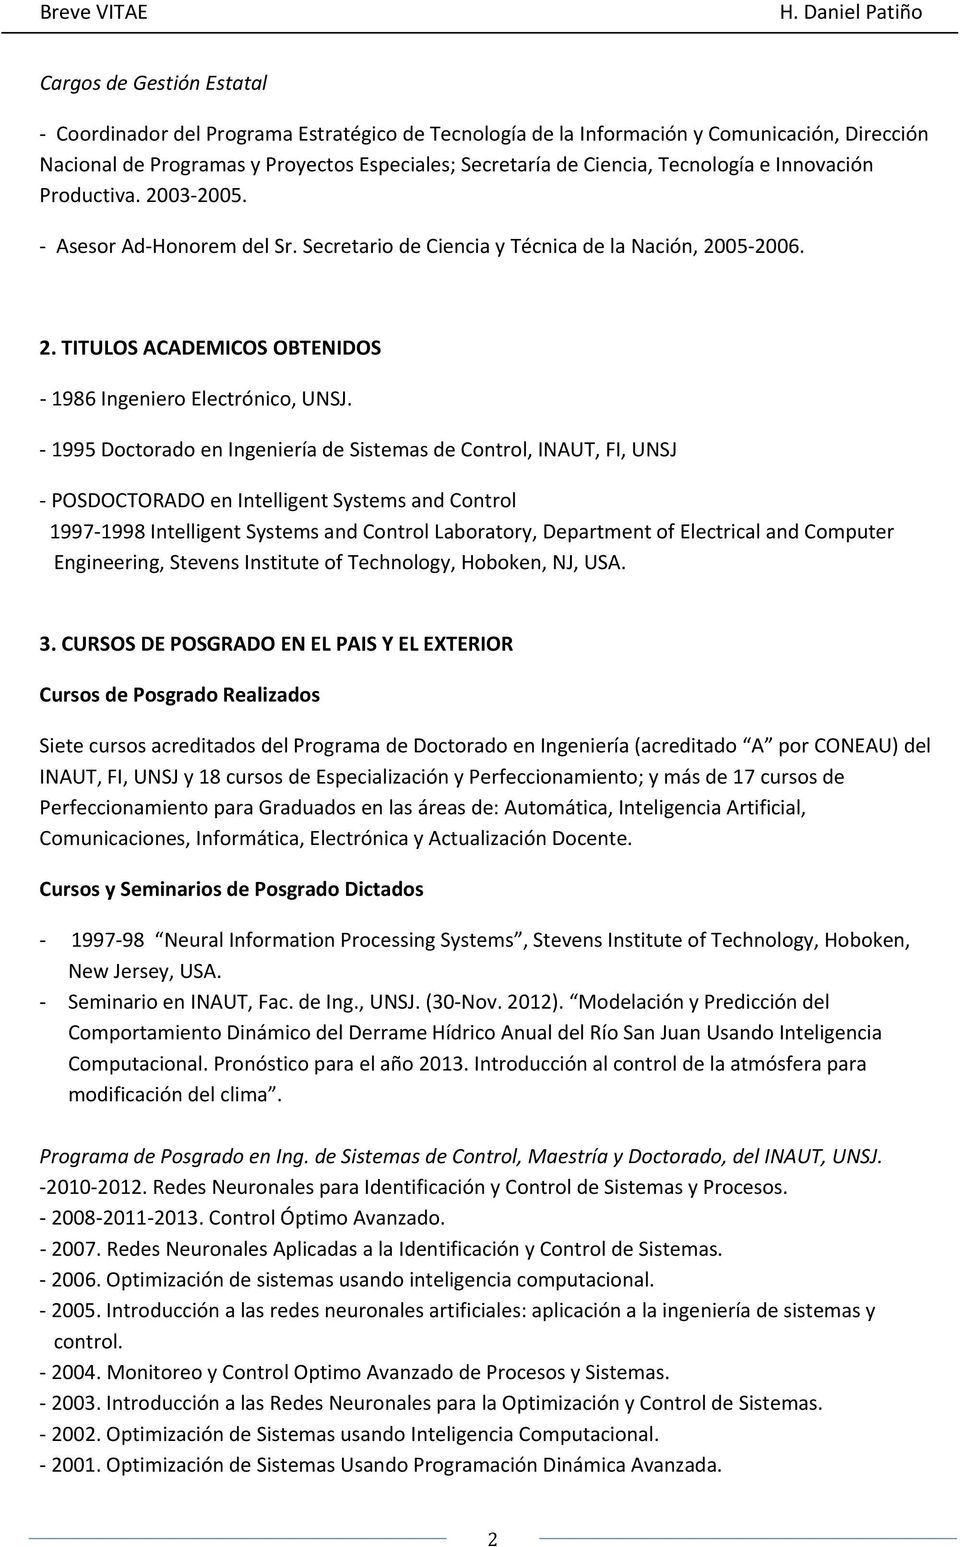 1995 Doctorado en Ingeniería de Sistemas de Control, INAUT, FI, UNSJ POSDOCTORADO en Intelligent Systems and Control 1997 1998 Intelligent Systems and Control Laboratory, Department of Electrical and